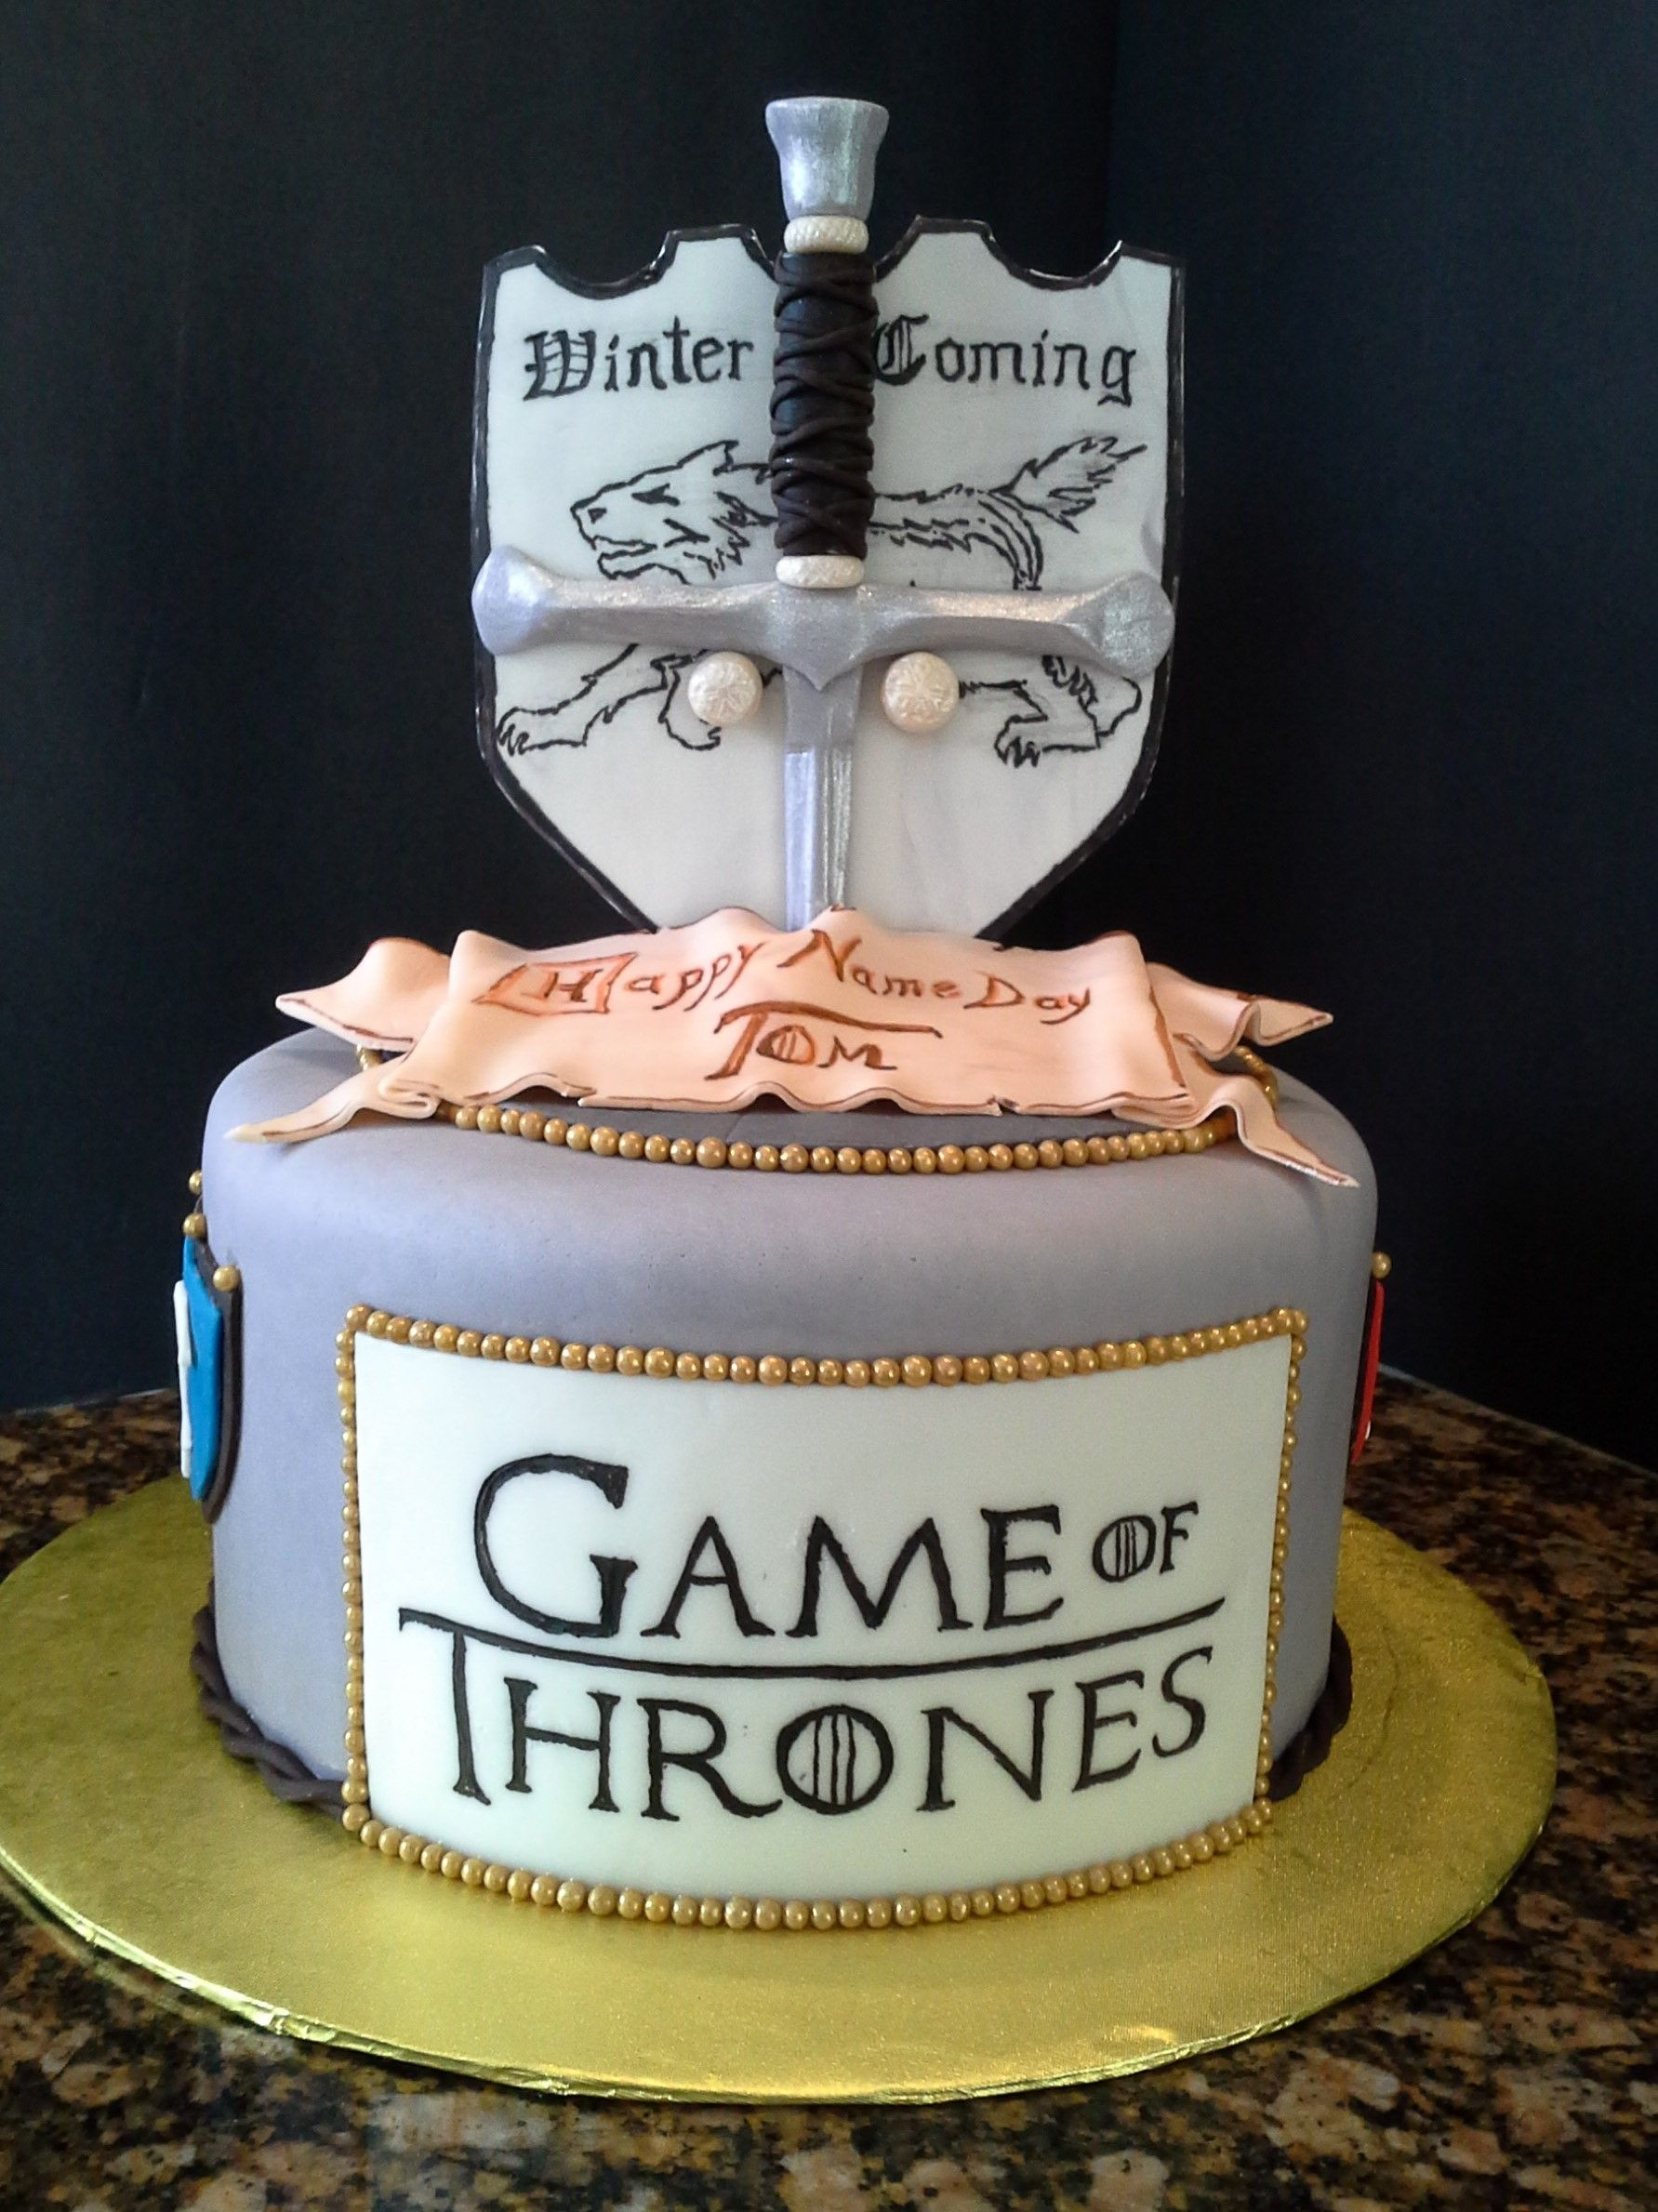 Game Of Thrones Cake Cakes And Cake Pops Pinterest Gaming - Cake birthday games